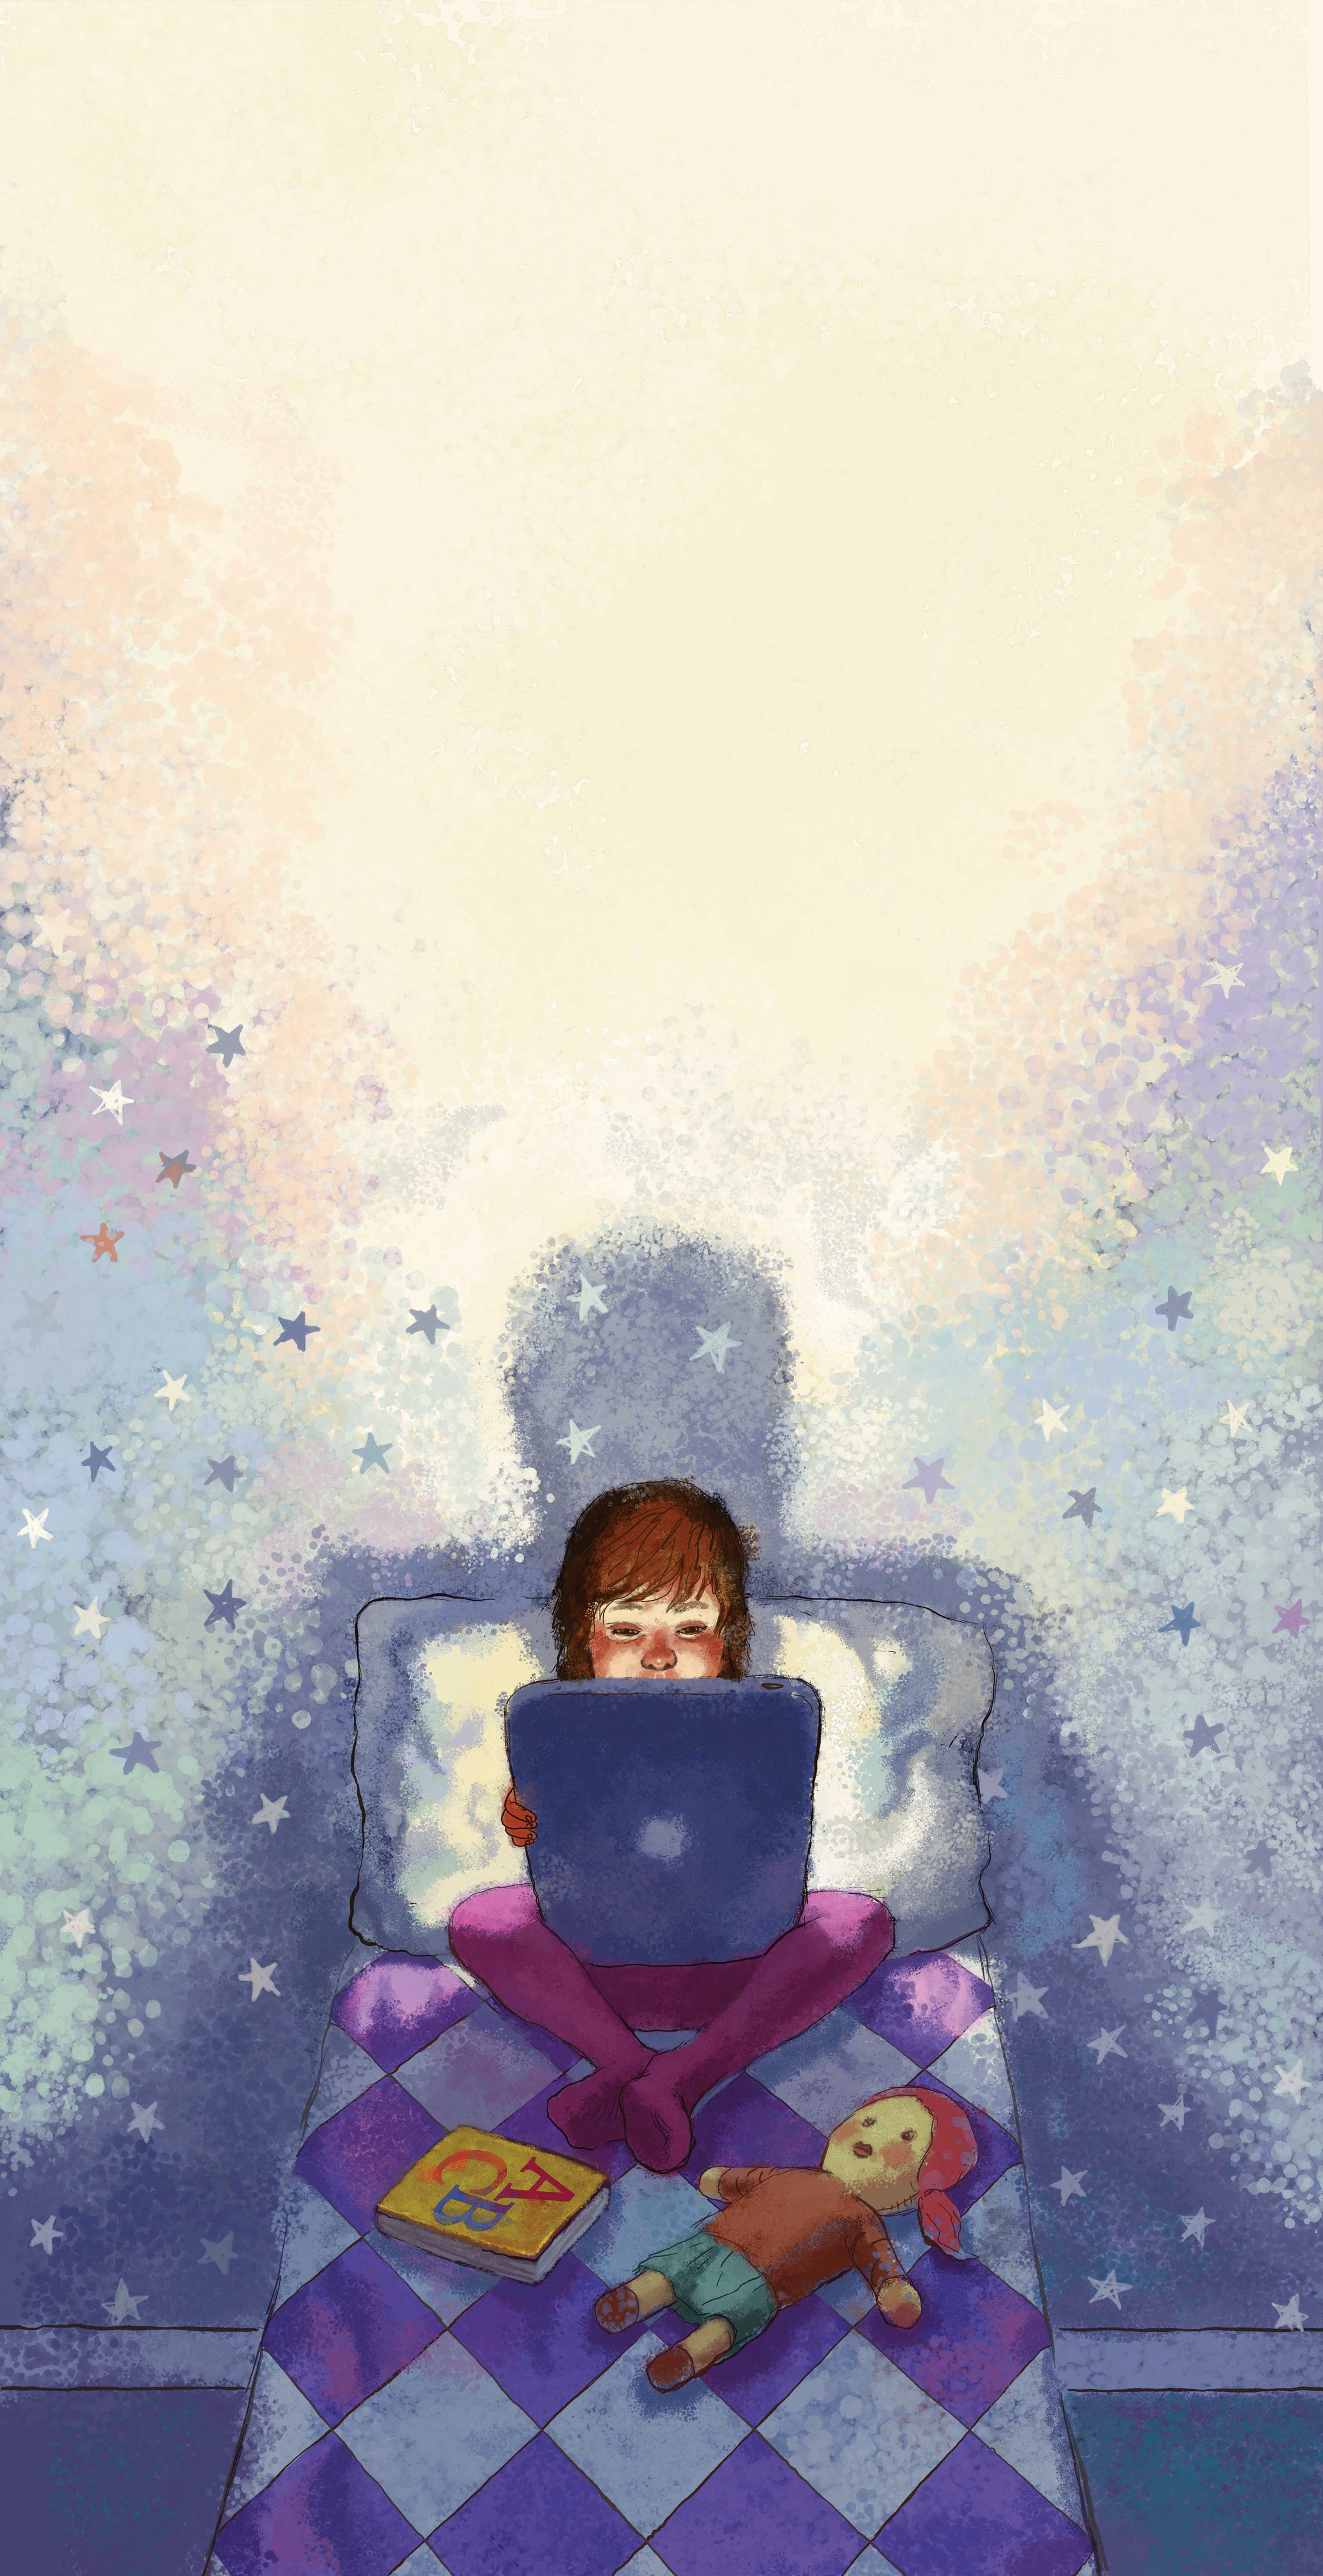 300 dpi Jeff Durham illustration of a child sitting in bed reading a tablet under a starry sky. (Bay Area News Group/MCT)